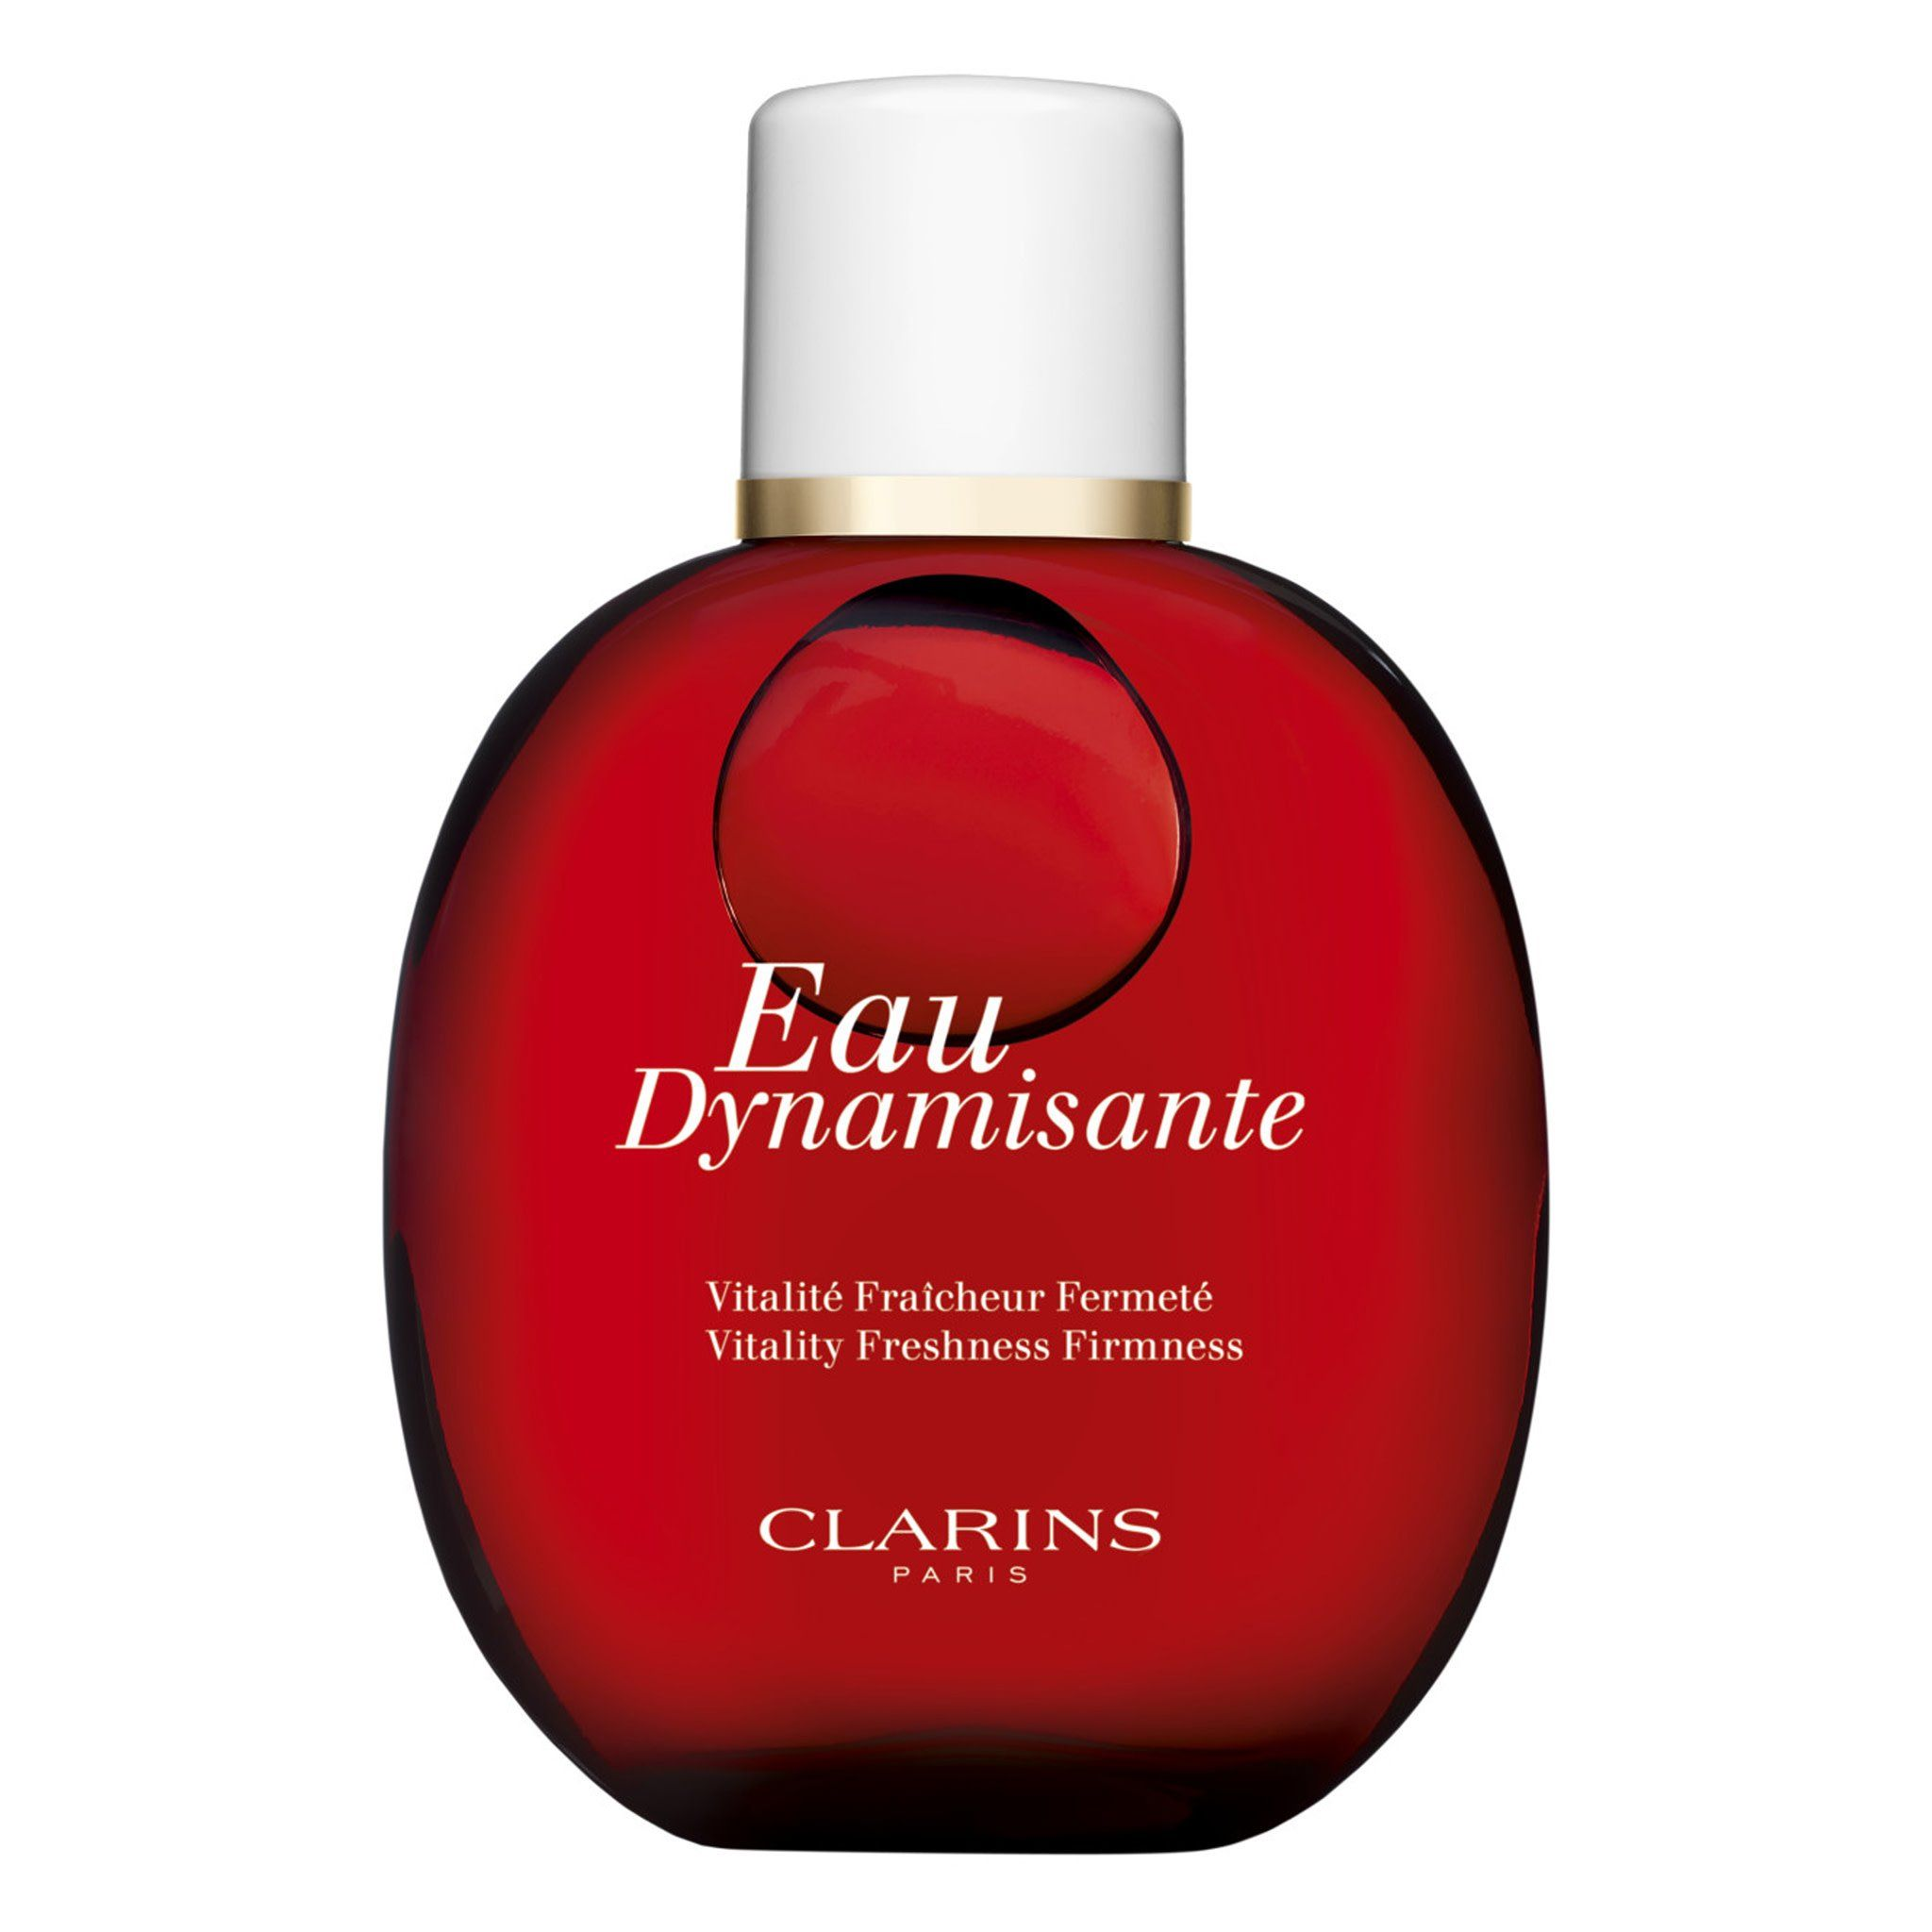 Eau de toilette combining a perfume with the treatment power of plants, hydrating, moisturizing, firming and toning skin.